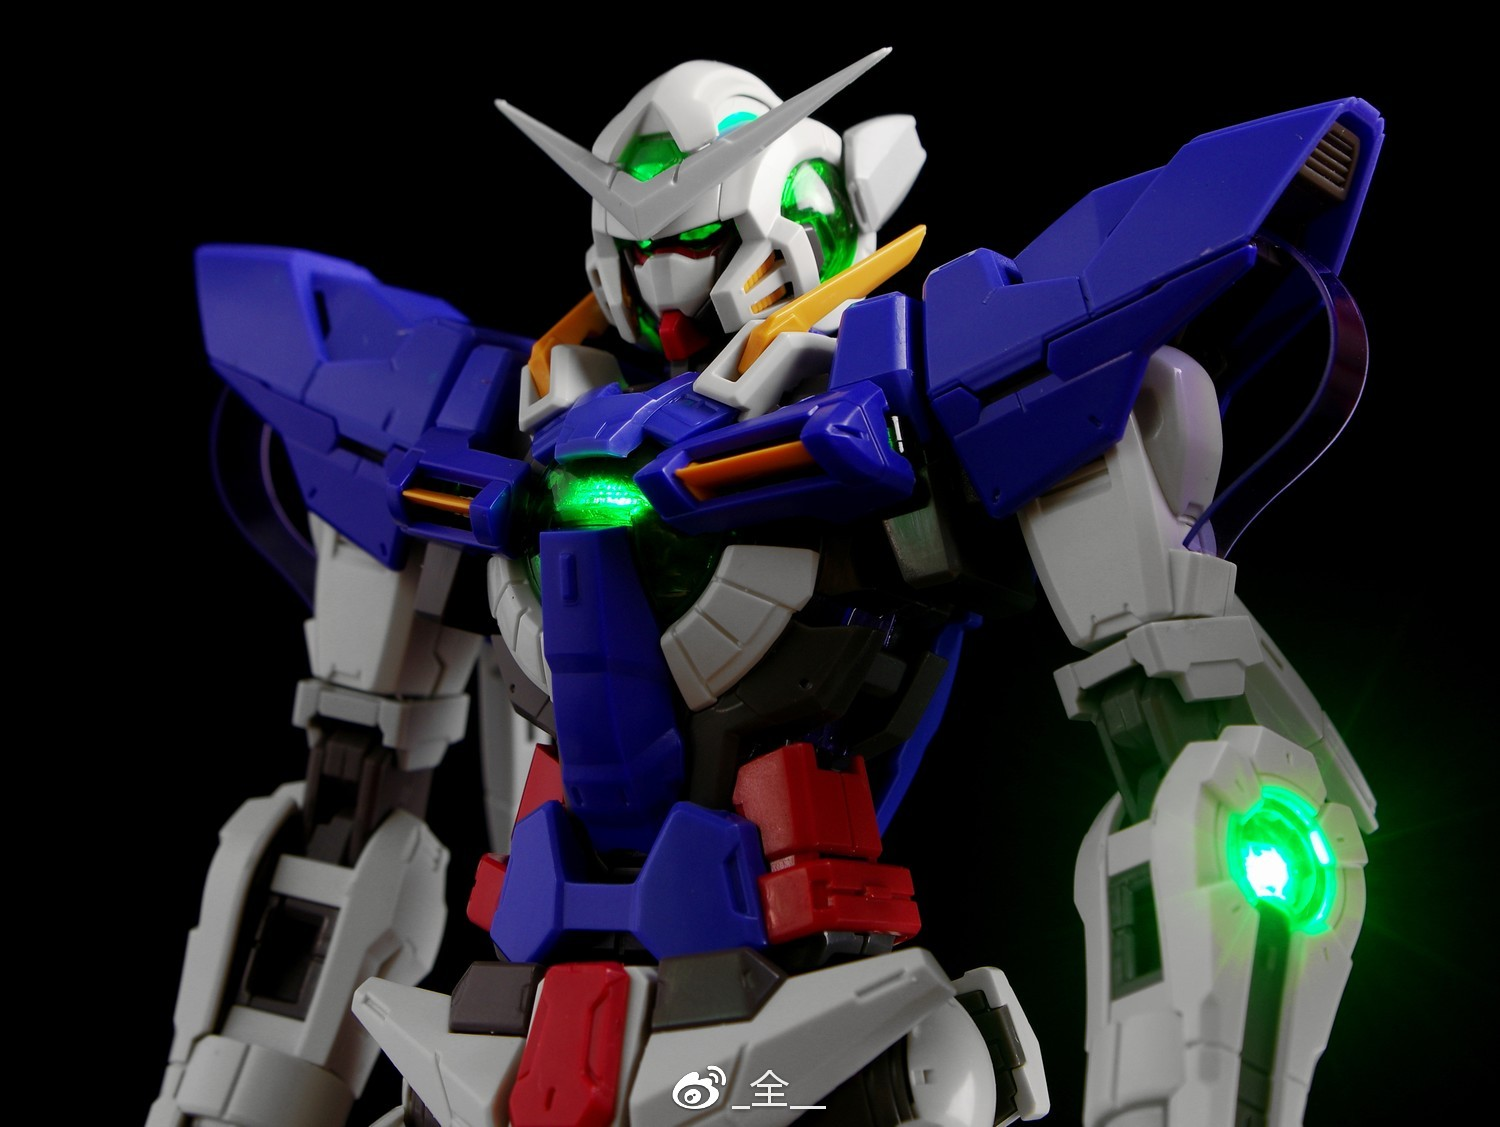 S269_mg_exia_led_hobby_star_inask_053.jpg